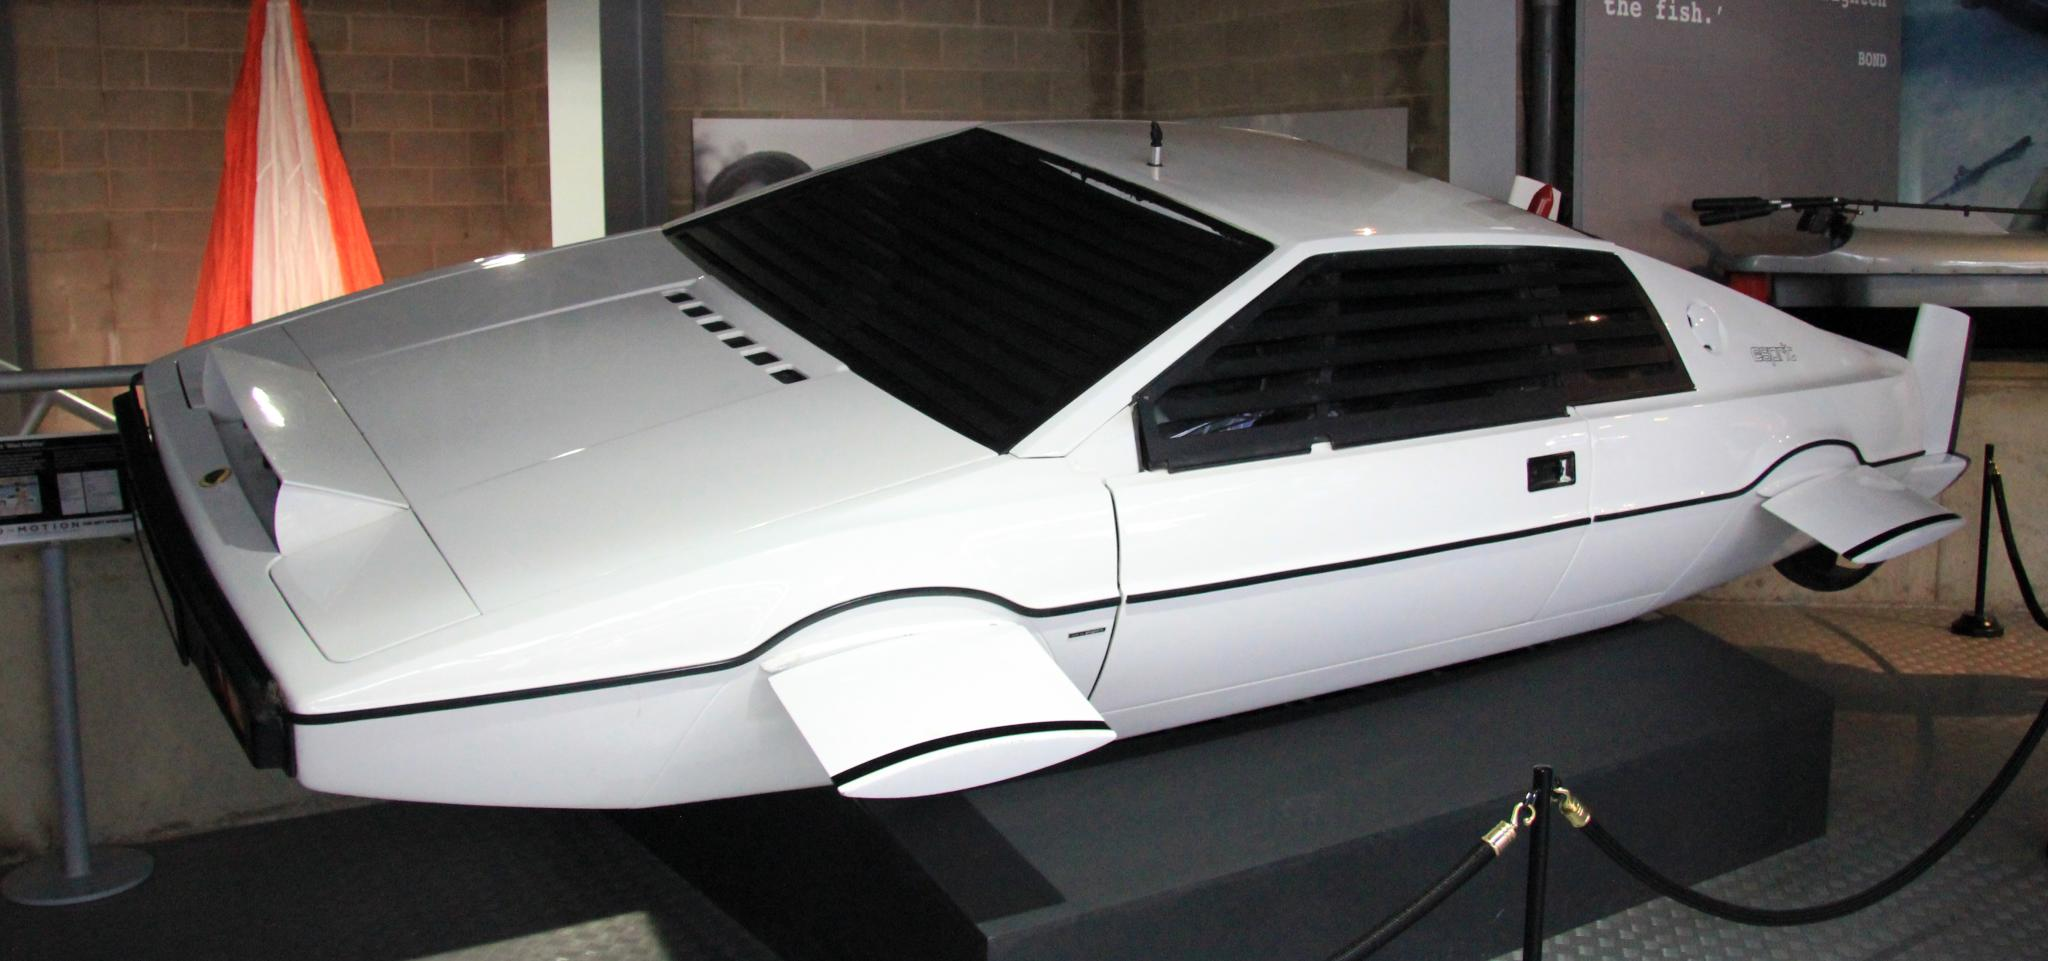 https://upload.wikimedia.org/wikipedia/commons/2/24/Lotus_Esprit_%28The_Spy_Who_Loved_Me%29_left-front_National_Motor_Museum%2C_Beaulieu.jpg